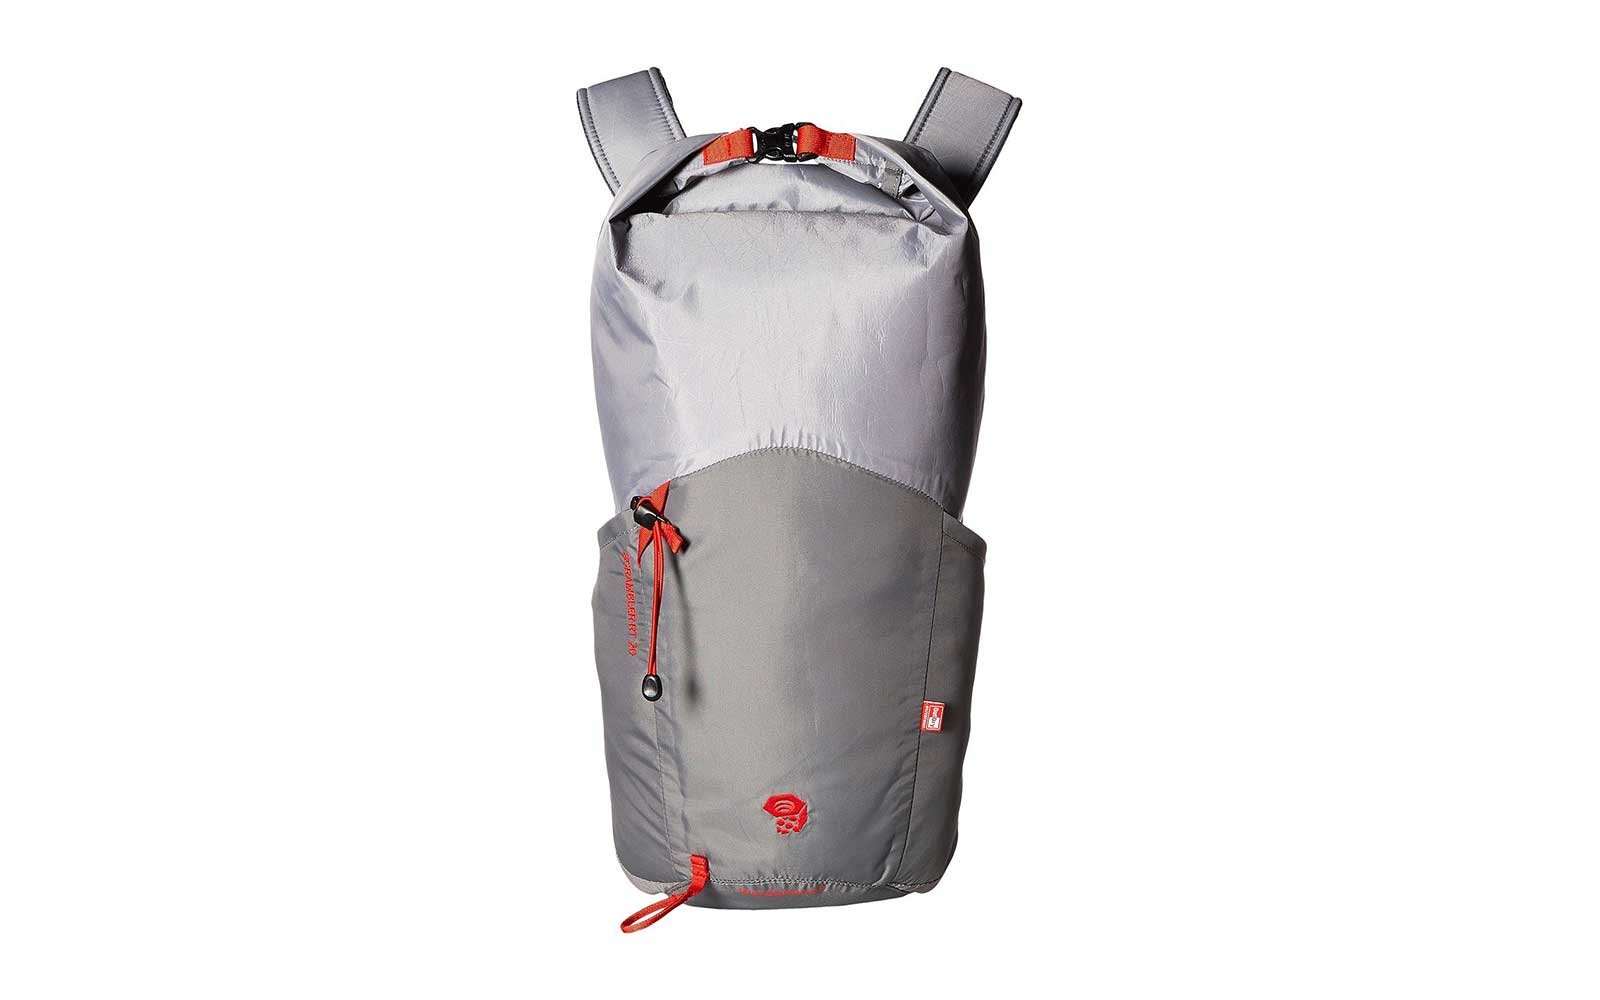 Grey scrambler waterproof backpack from Mountain Hardwear